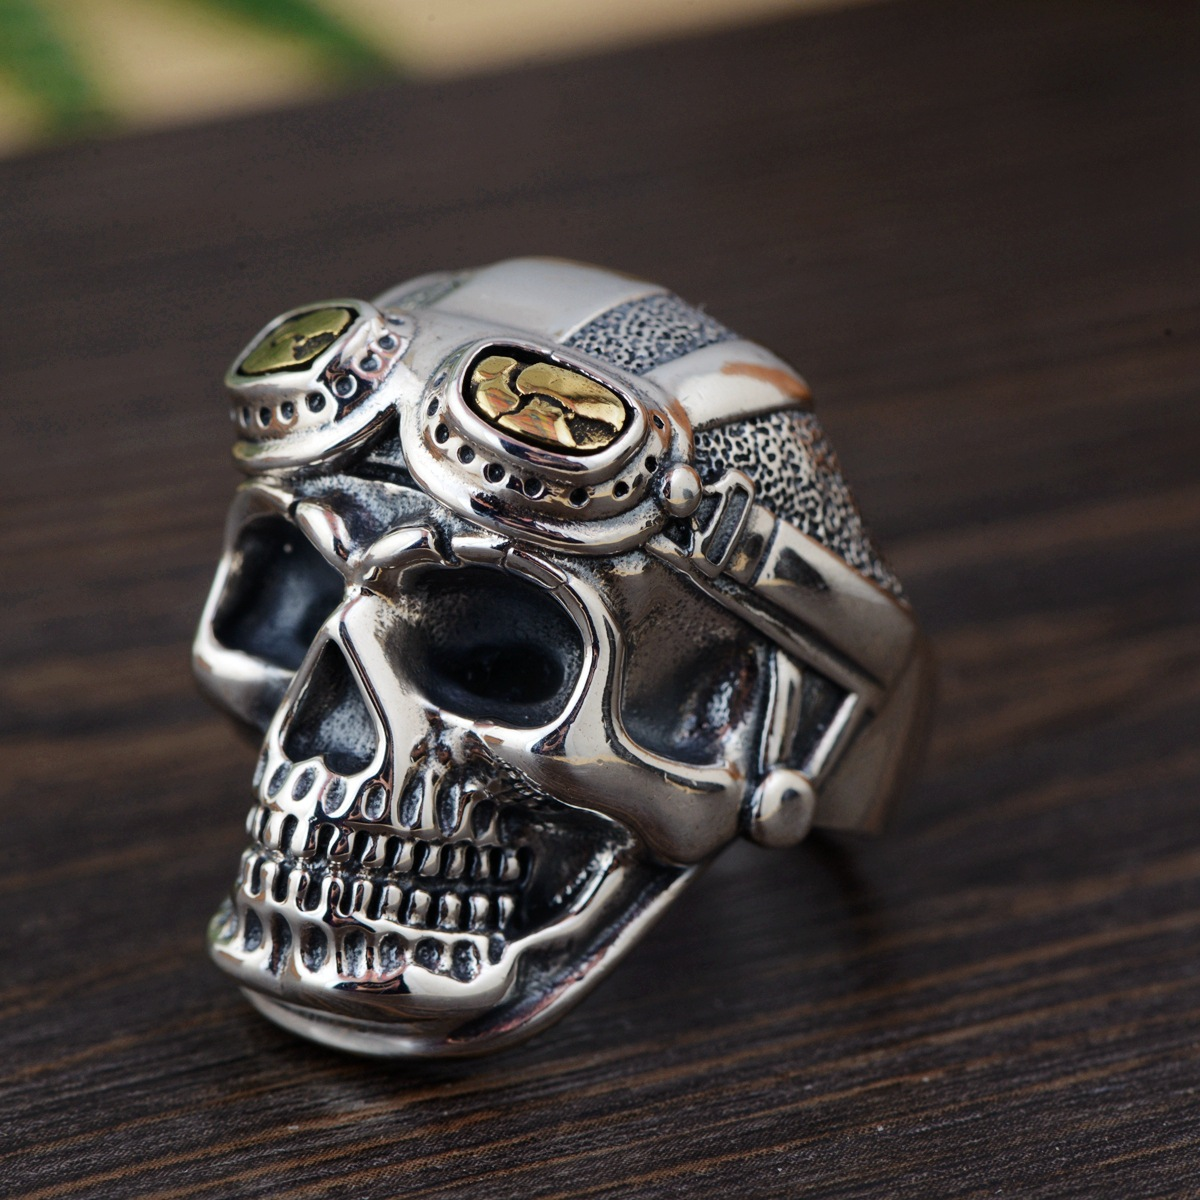 S925 sterling silver antique style skull male open ring s925 silver antique style men open world peace ring